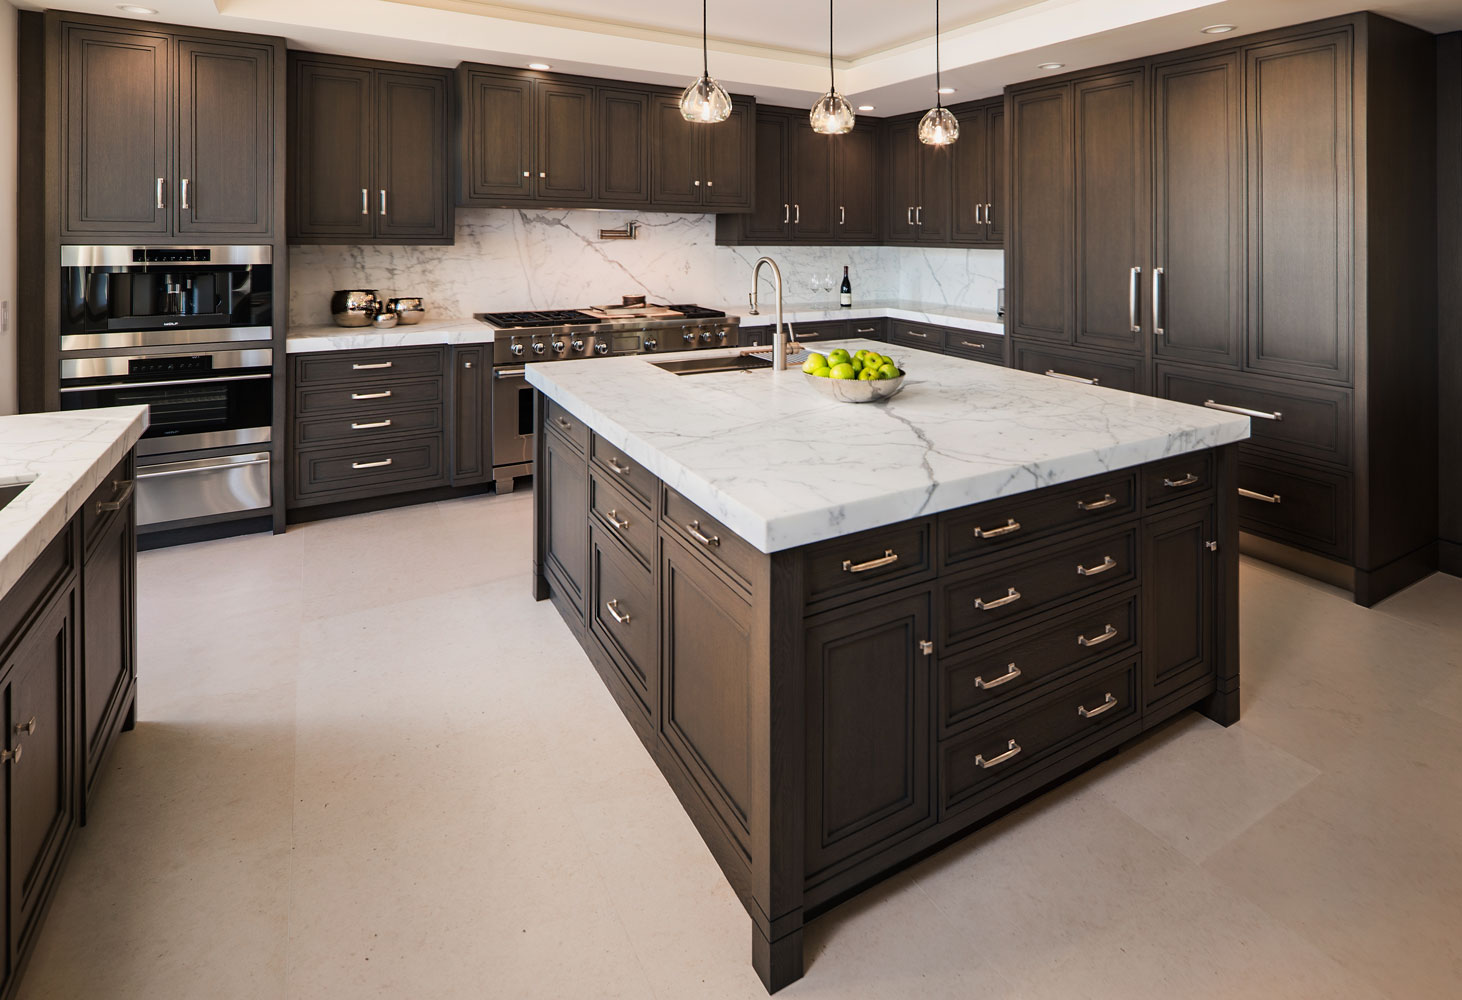 Contemporary-Kitchen-Dark-Cabinets-Marble-Countertops-Corbin-Reeves.jpg